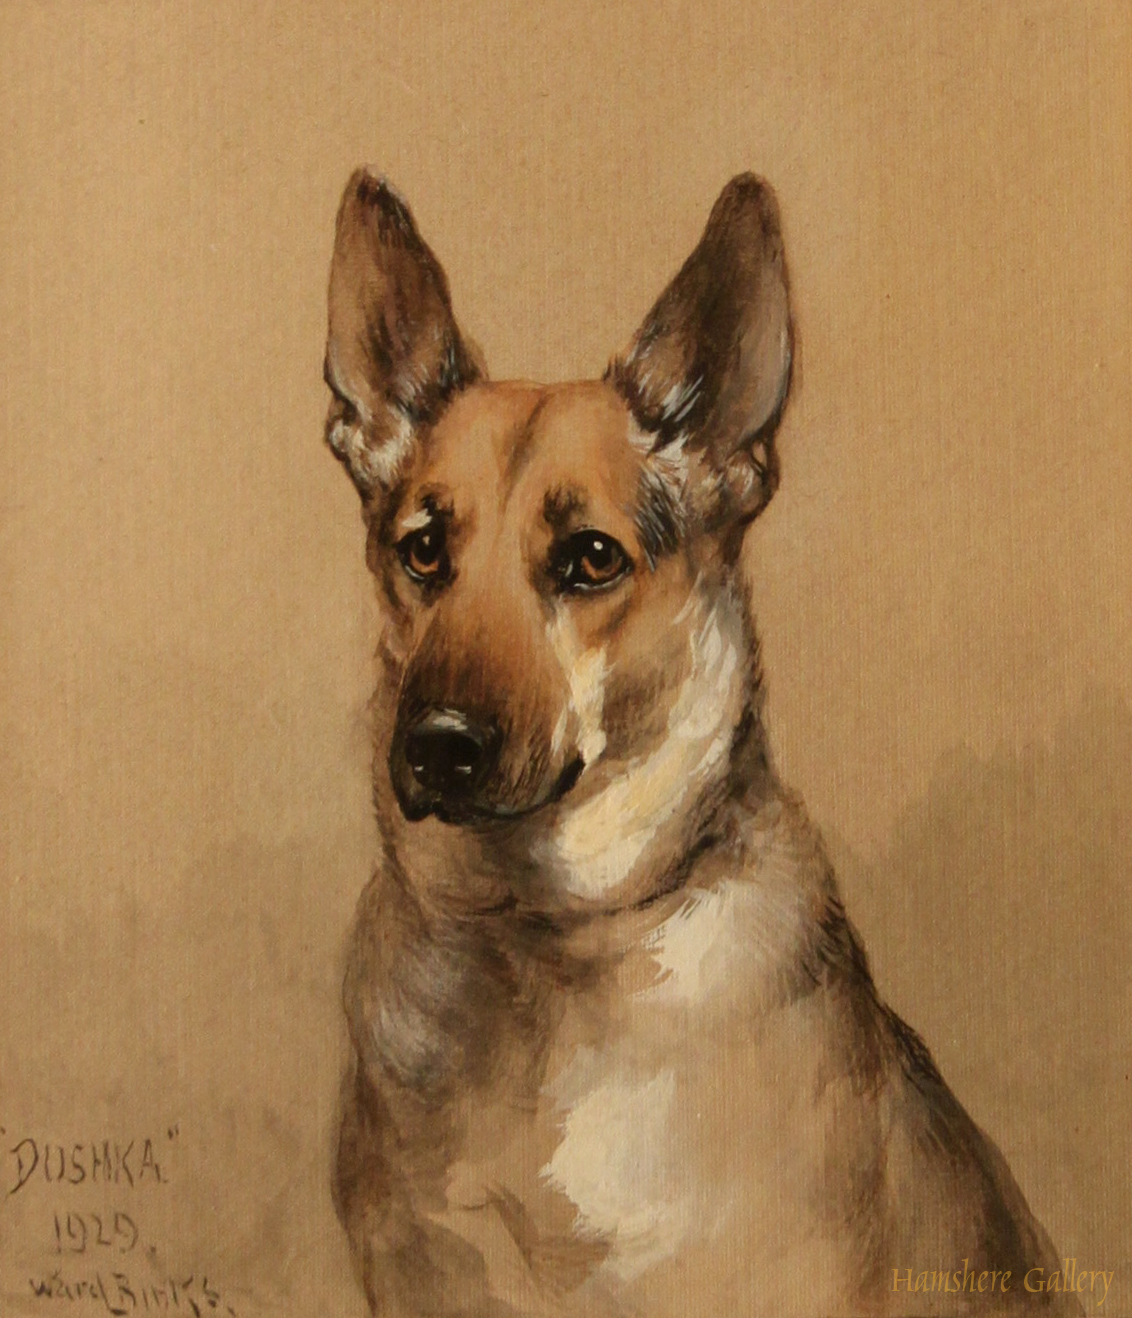 Click to see full size: German Shepherd Dushka by Reuben Ward Binks H. R. H. Prince George, the Duke of Kent with Dushka